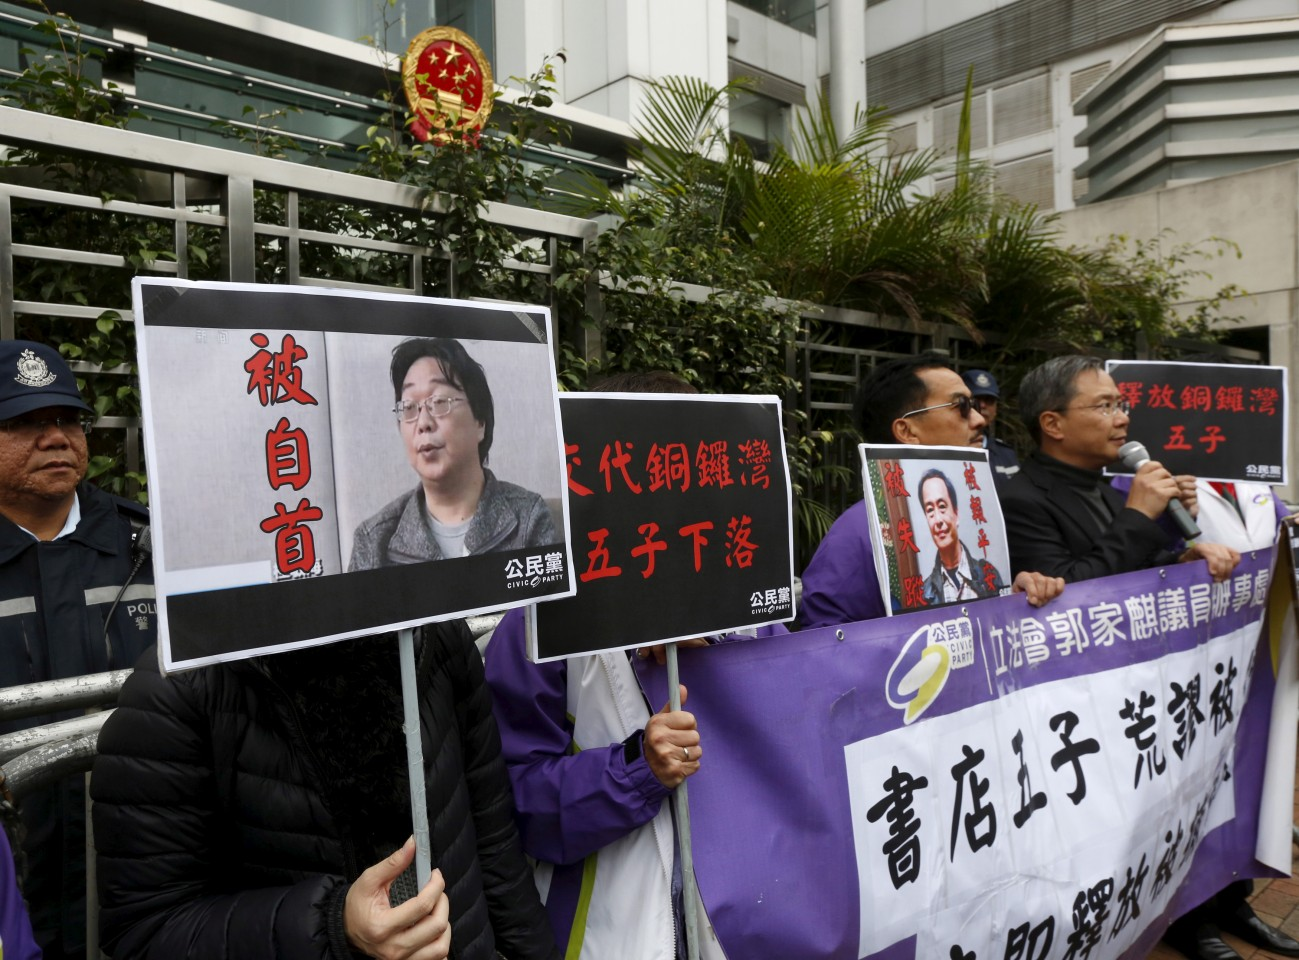 Pro-democracy activists carry a portrait of Gui Minhai (L) during a protest outside the Chinese Liaison Office in Hong Kong, China, January 19, 2016. REUTERS/Bobby Yip